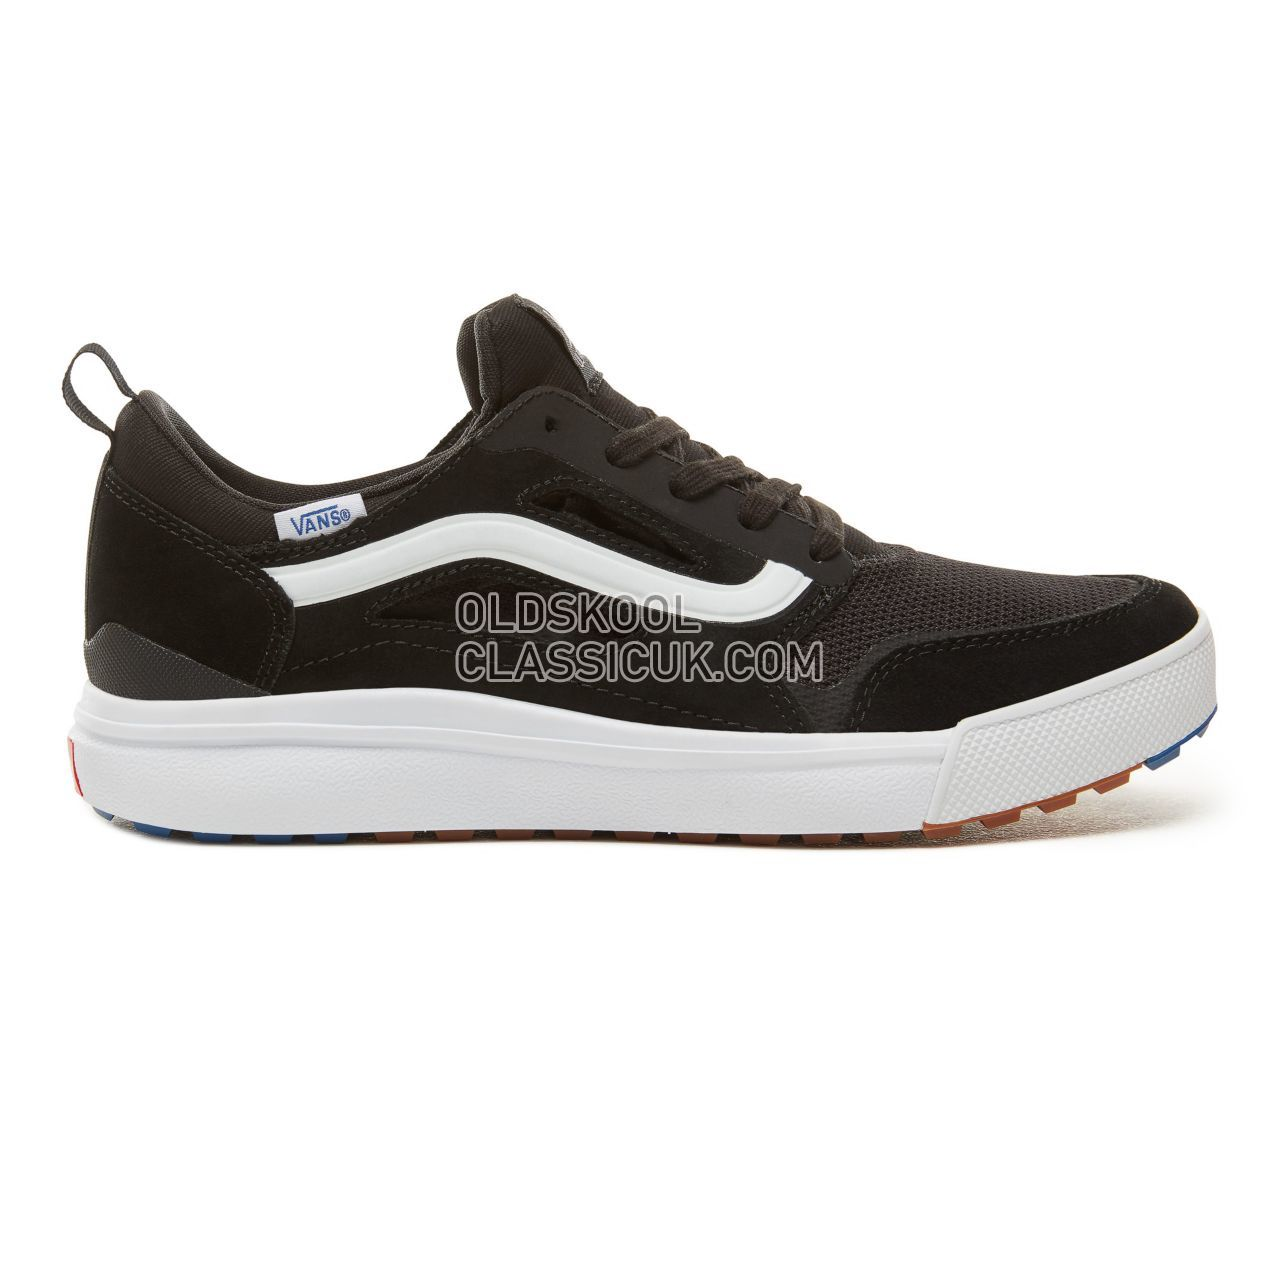 Vans UltraRange 3D Sneakers Mens Black/White VN0A3TKWY28 Shoes